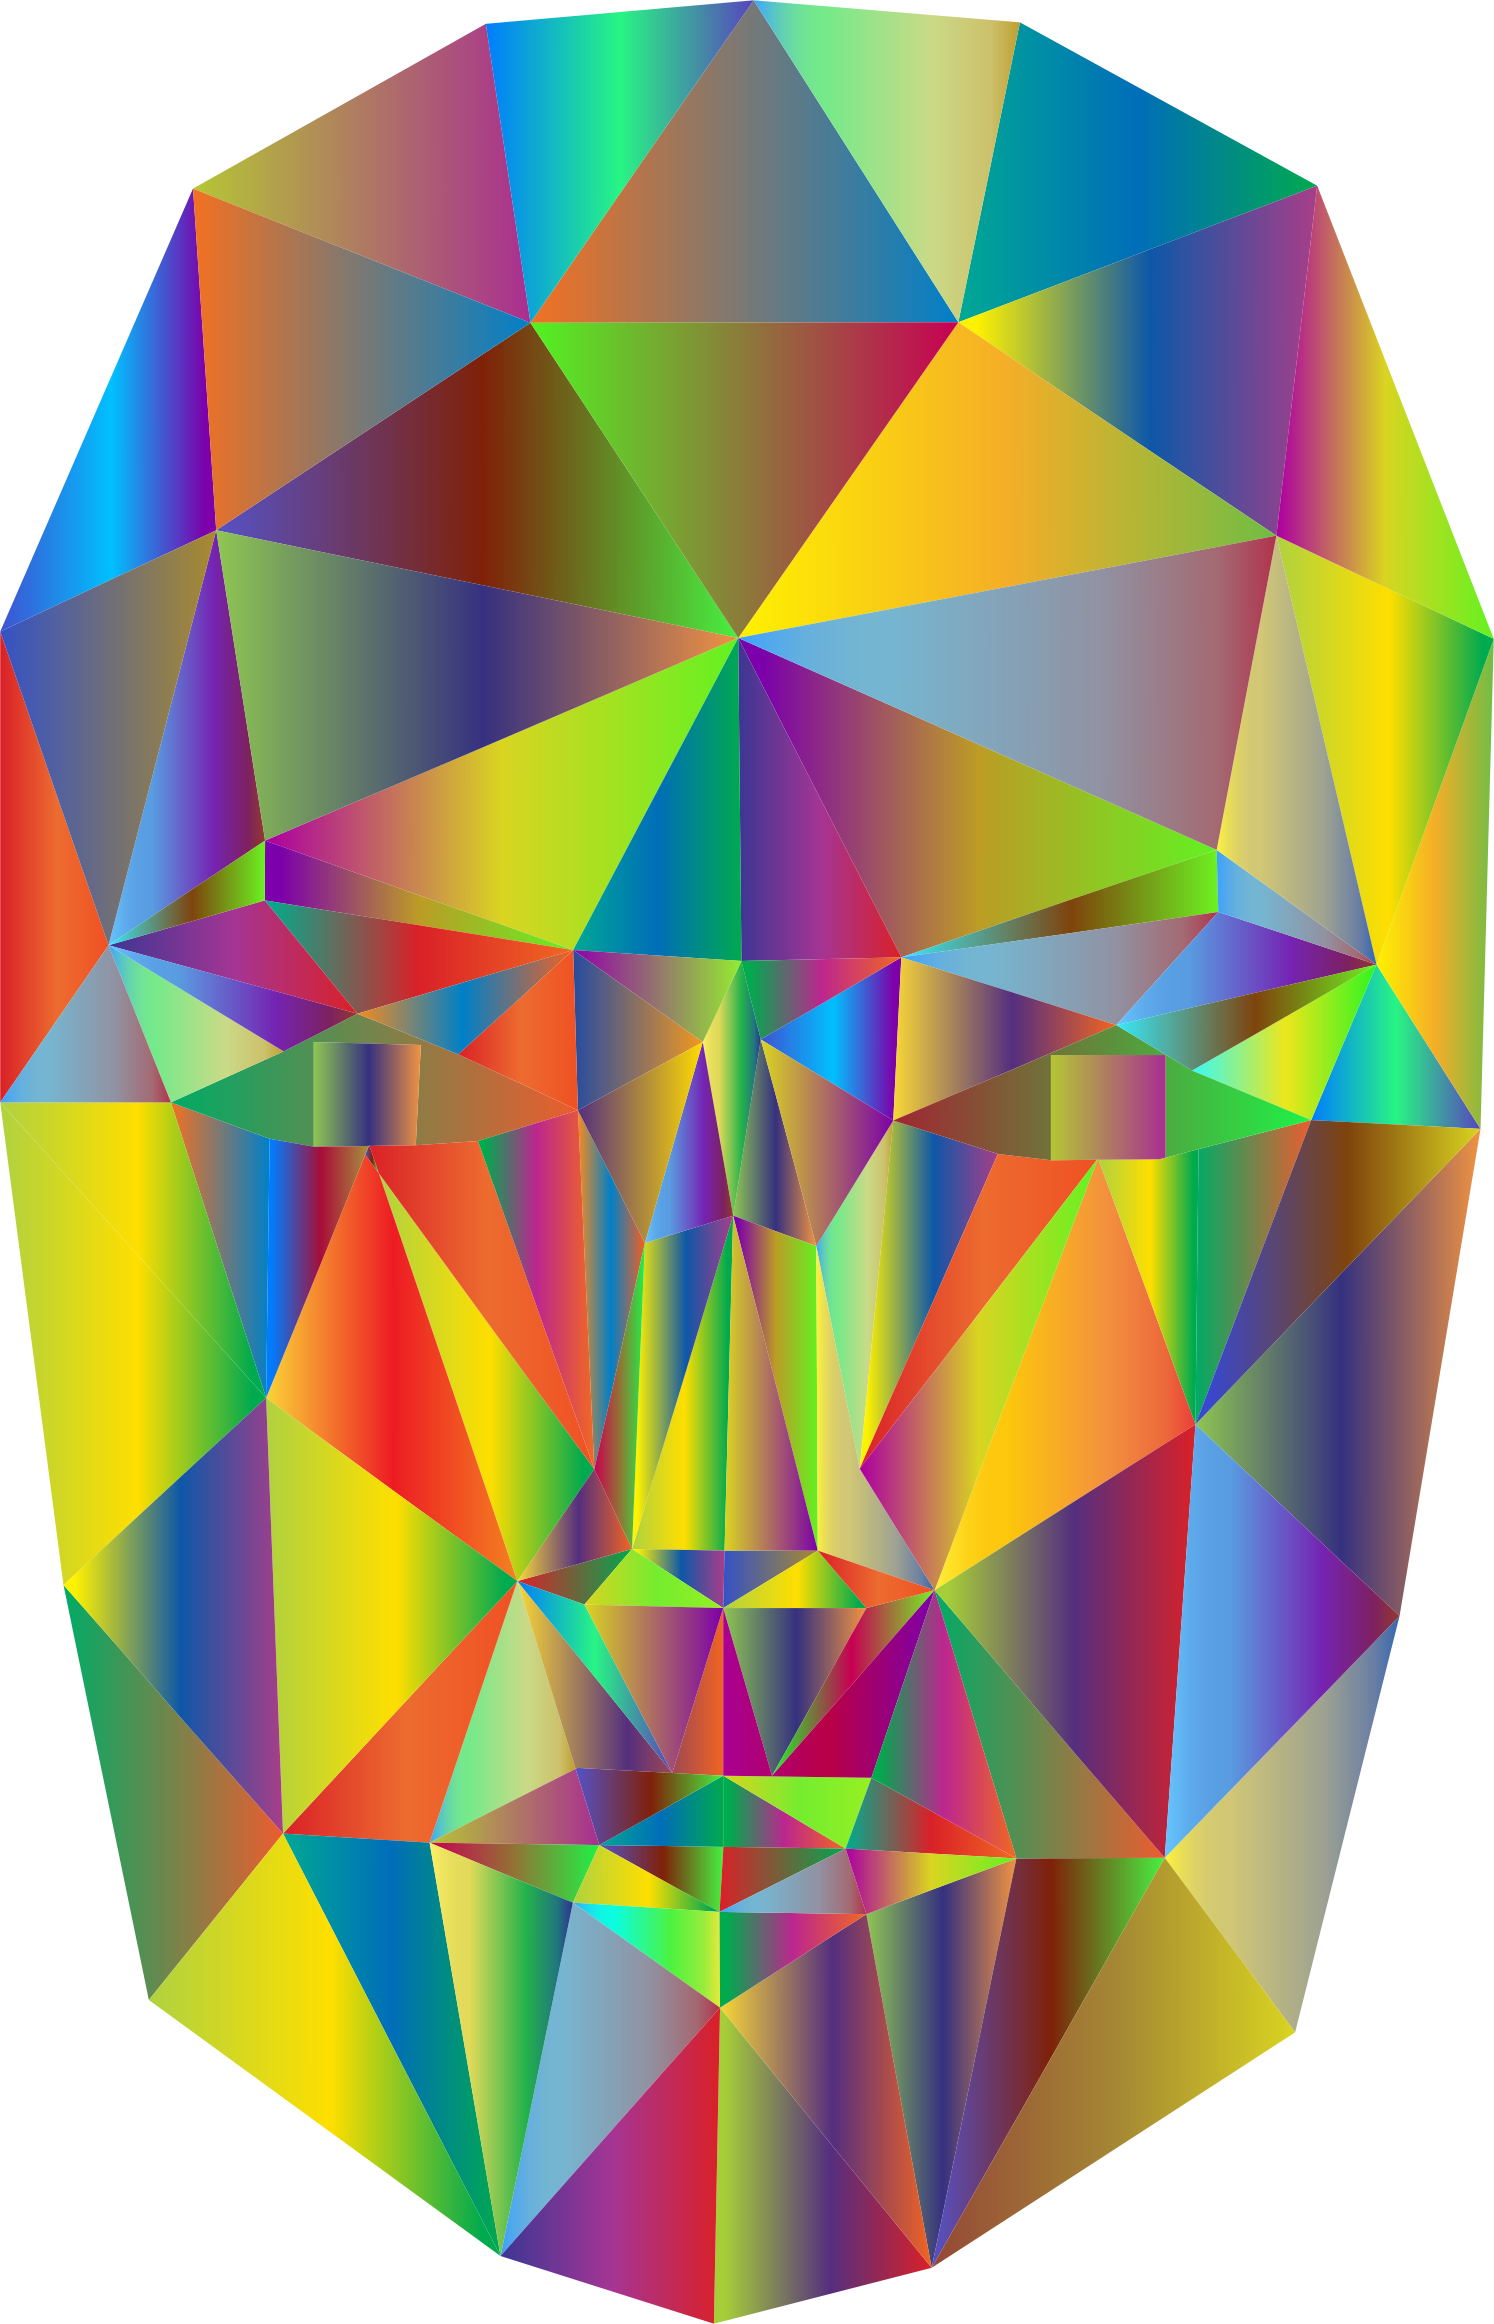 Prismatic Wireframe Head 2 by GDJ